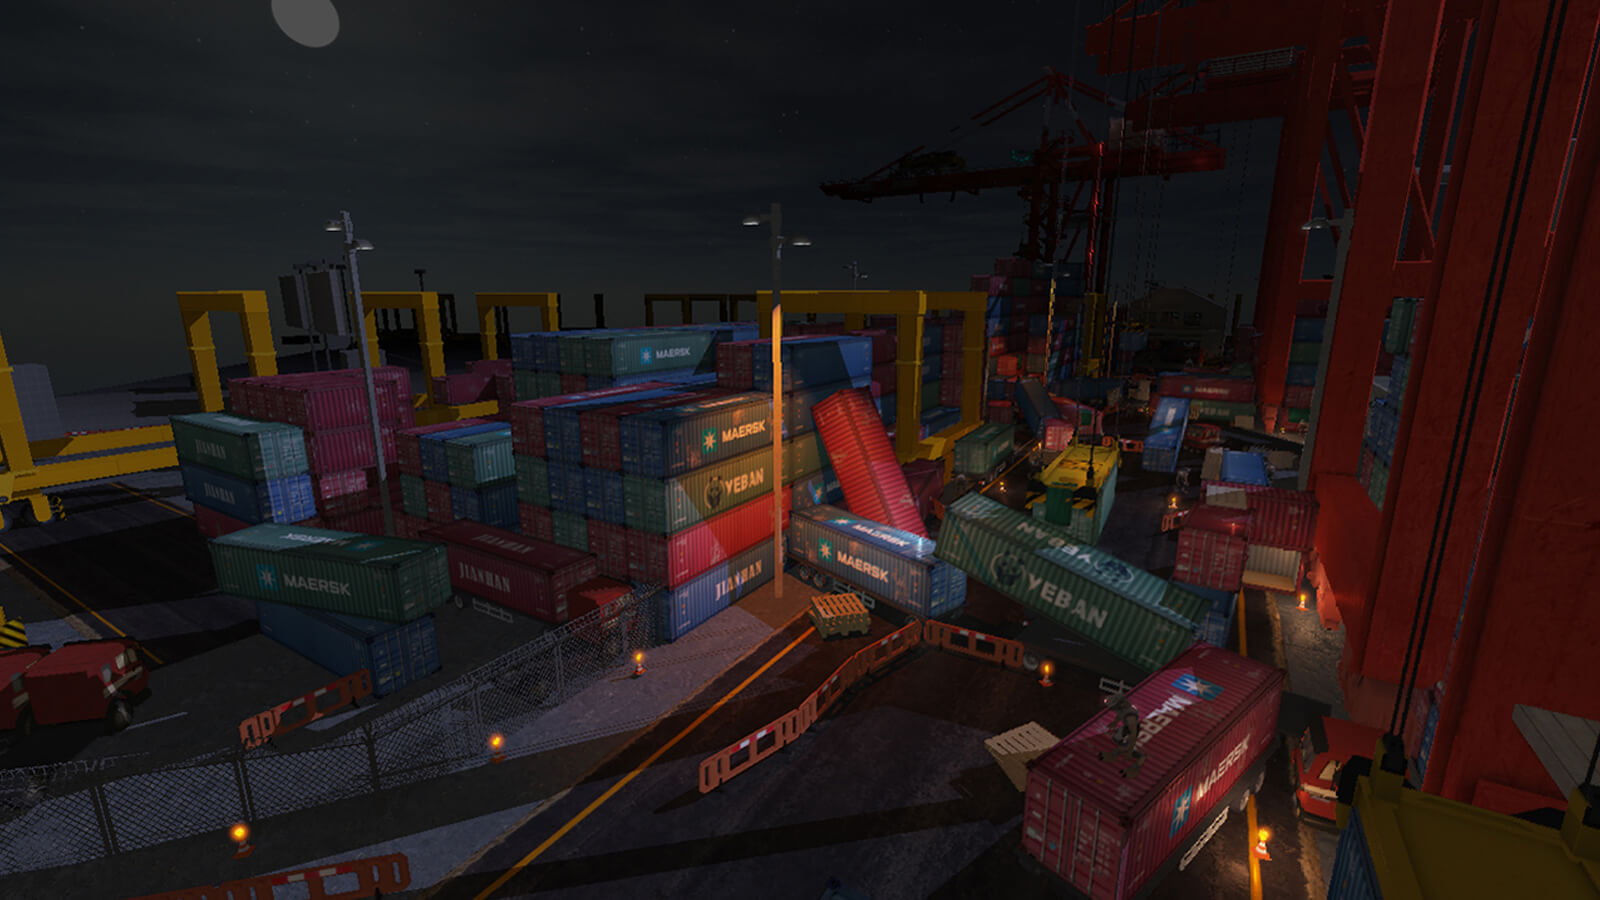 Dozens of shipping containers are stacked at a darkened dock. Several containers have fallen haphazardly to the ground.